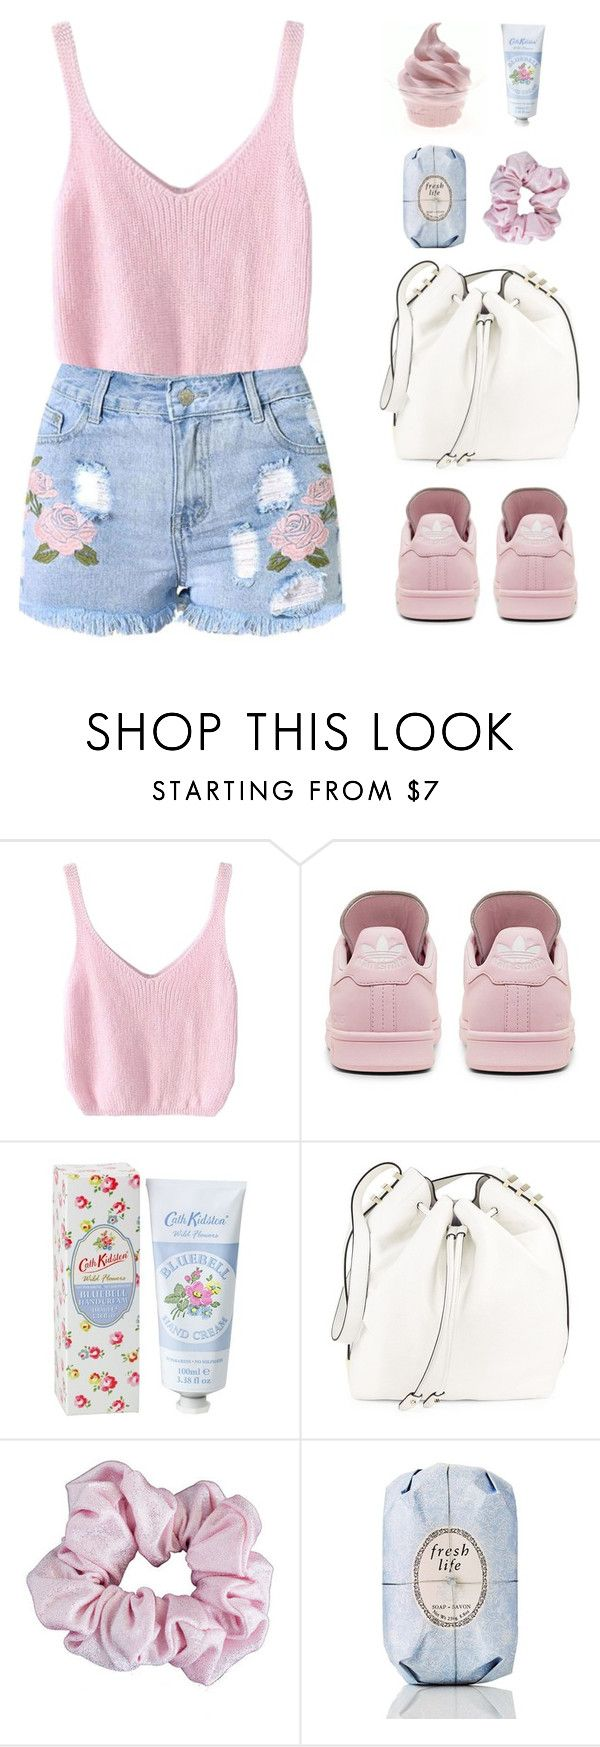 """""""The Final Cut"""" by sweetpastelady ❤ liked on Polyvore featuring adidas, Cath Kidston, Luana, American Apparel and Fresh"""